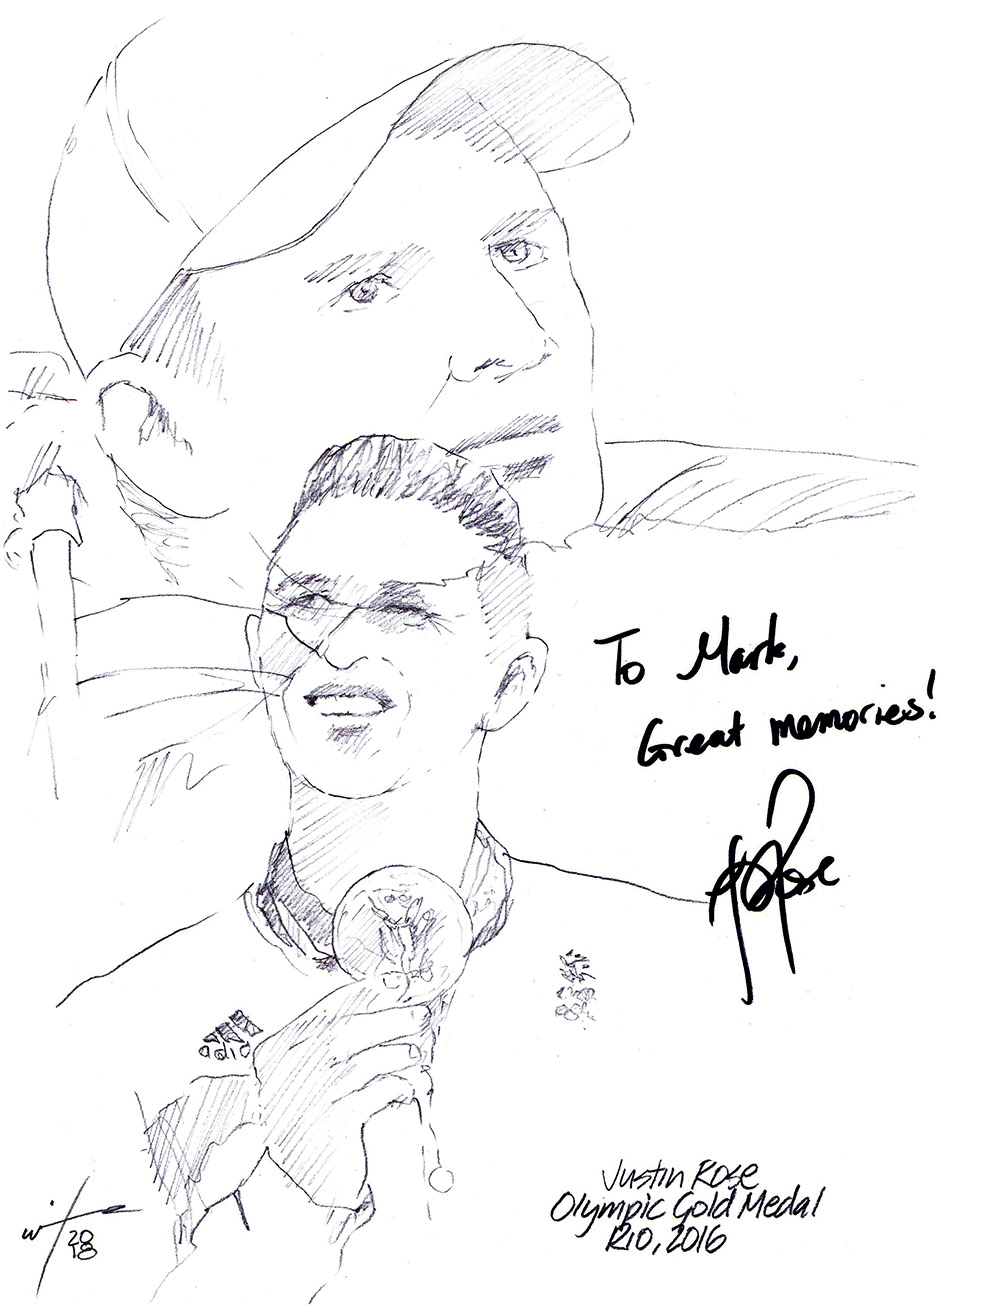 Autographed drawing of golfer Justin Rose